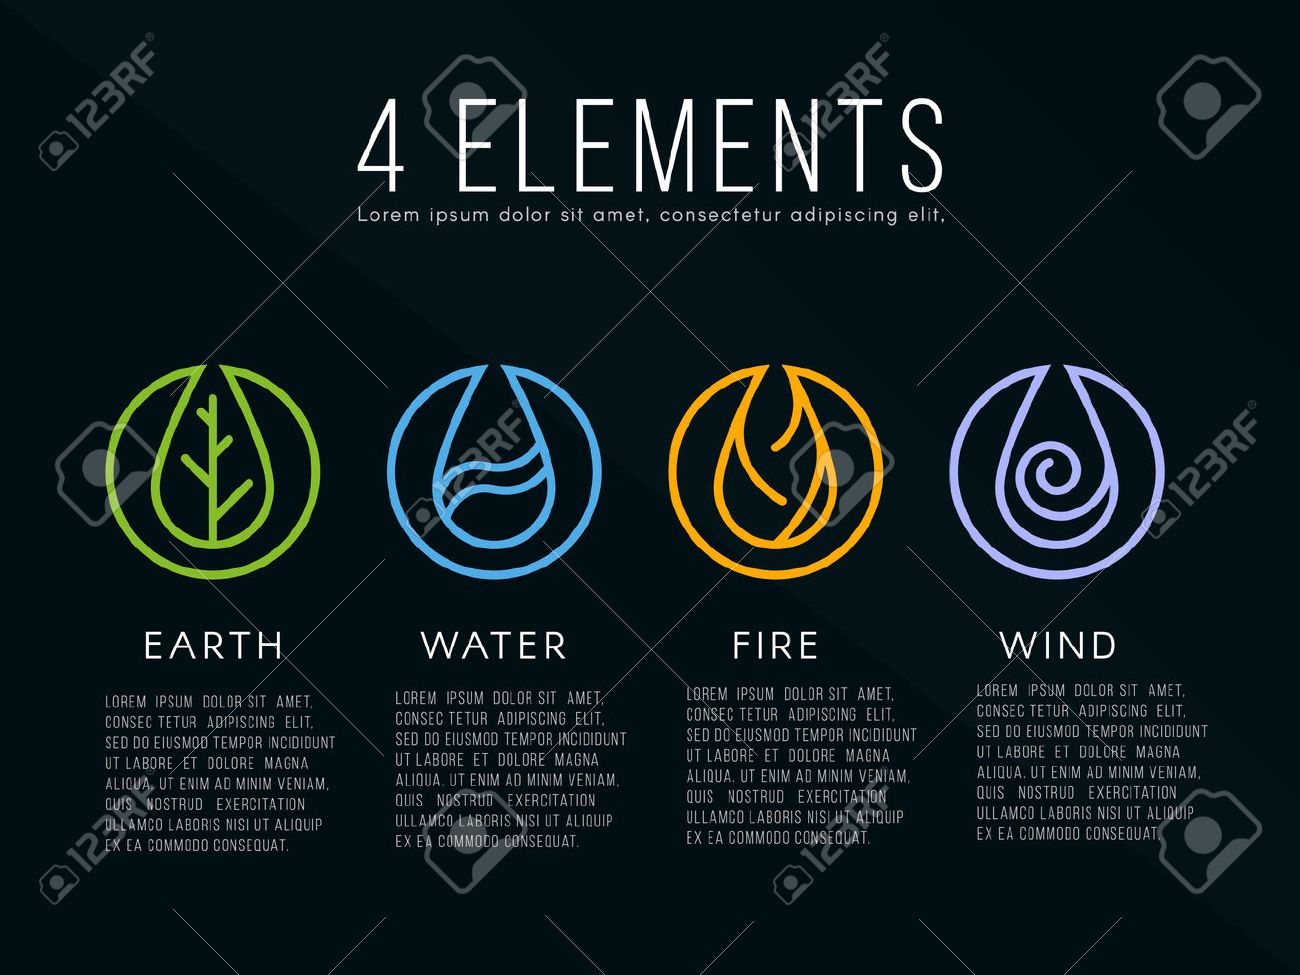 Nature 4 elements icon sign. Water, Fire, Earth, Air. on dark background. - 54421851